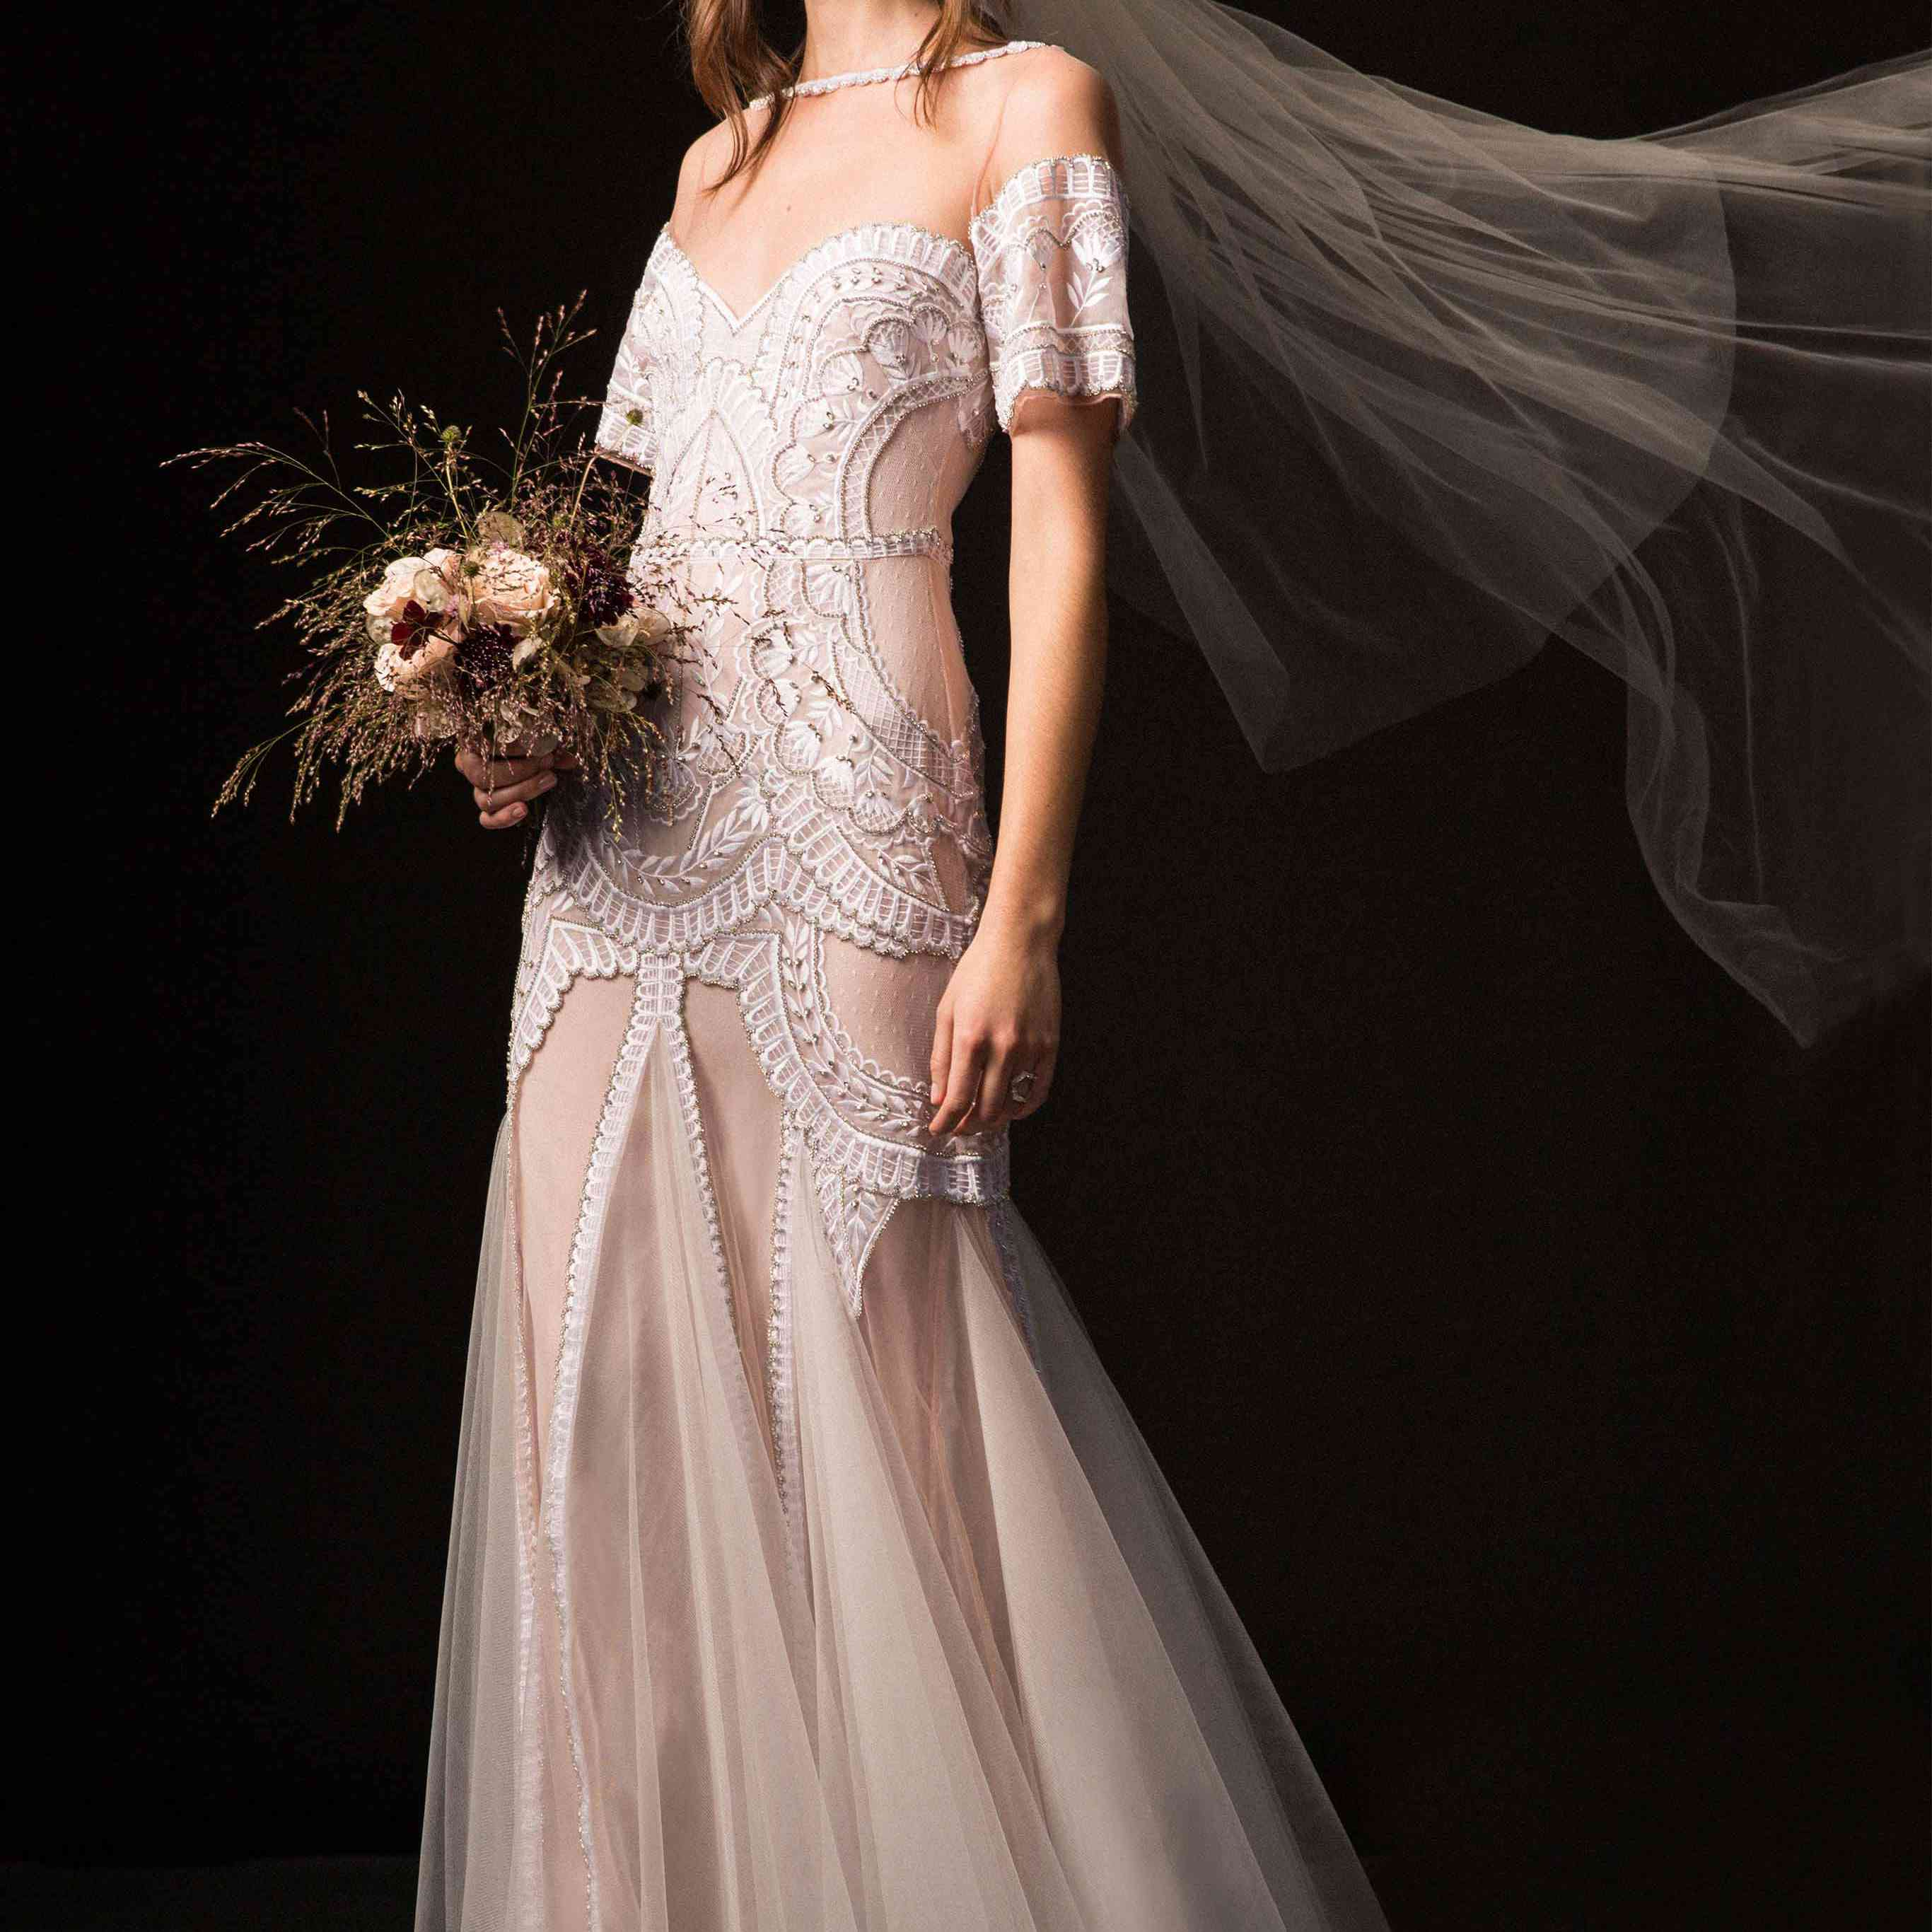 Model in embroidered tulle dress with illusion neckline and off-the-shoulder sleeves.